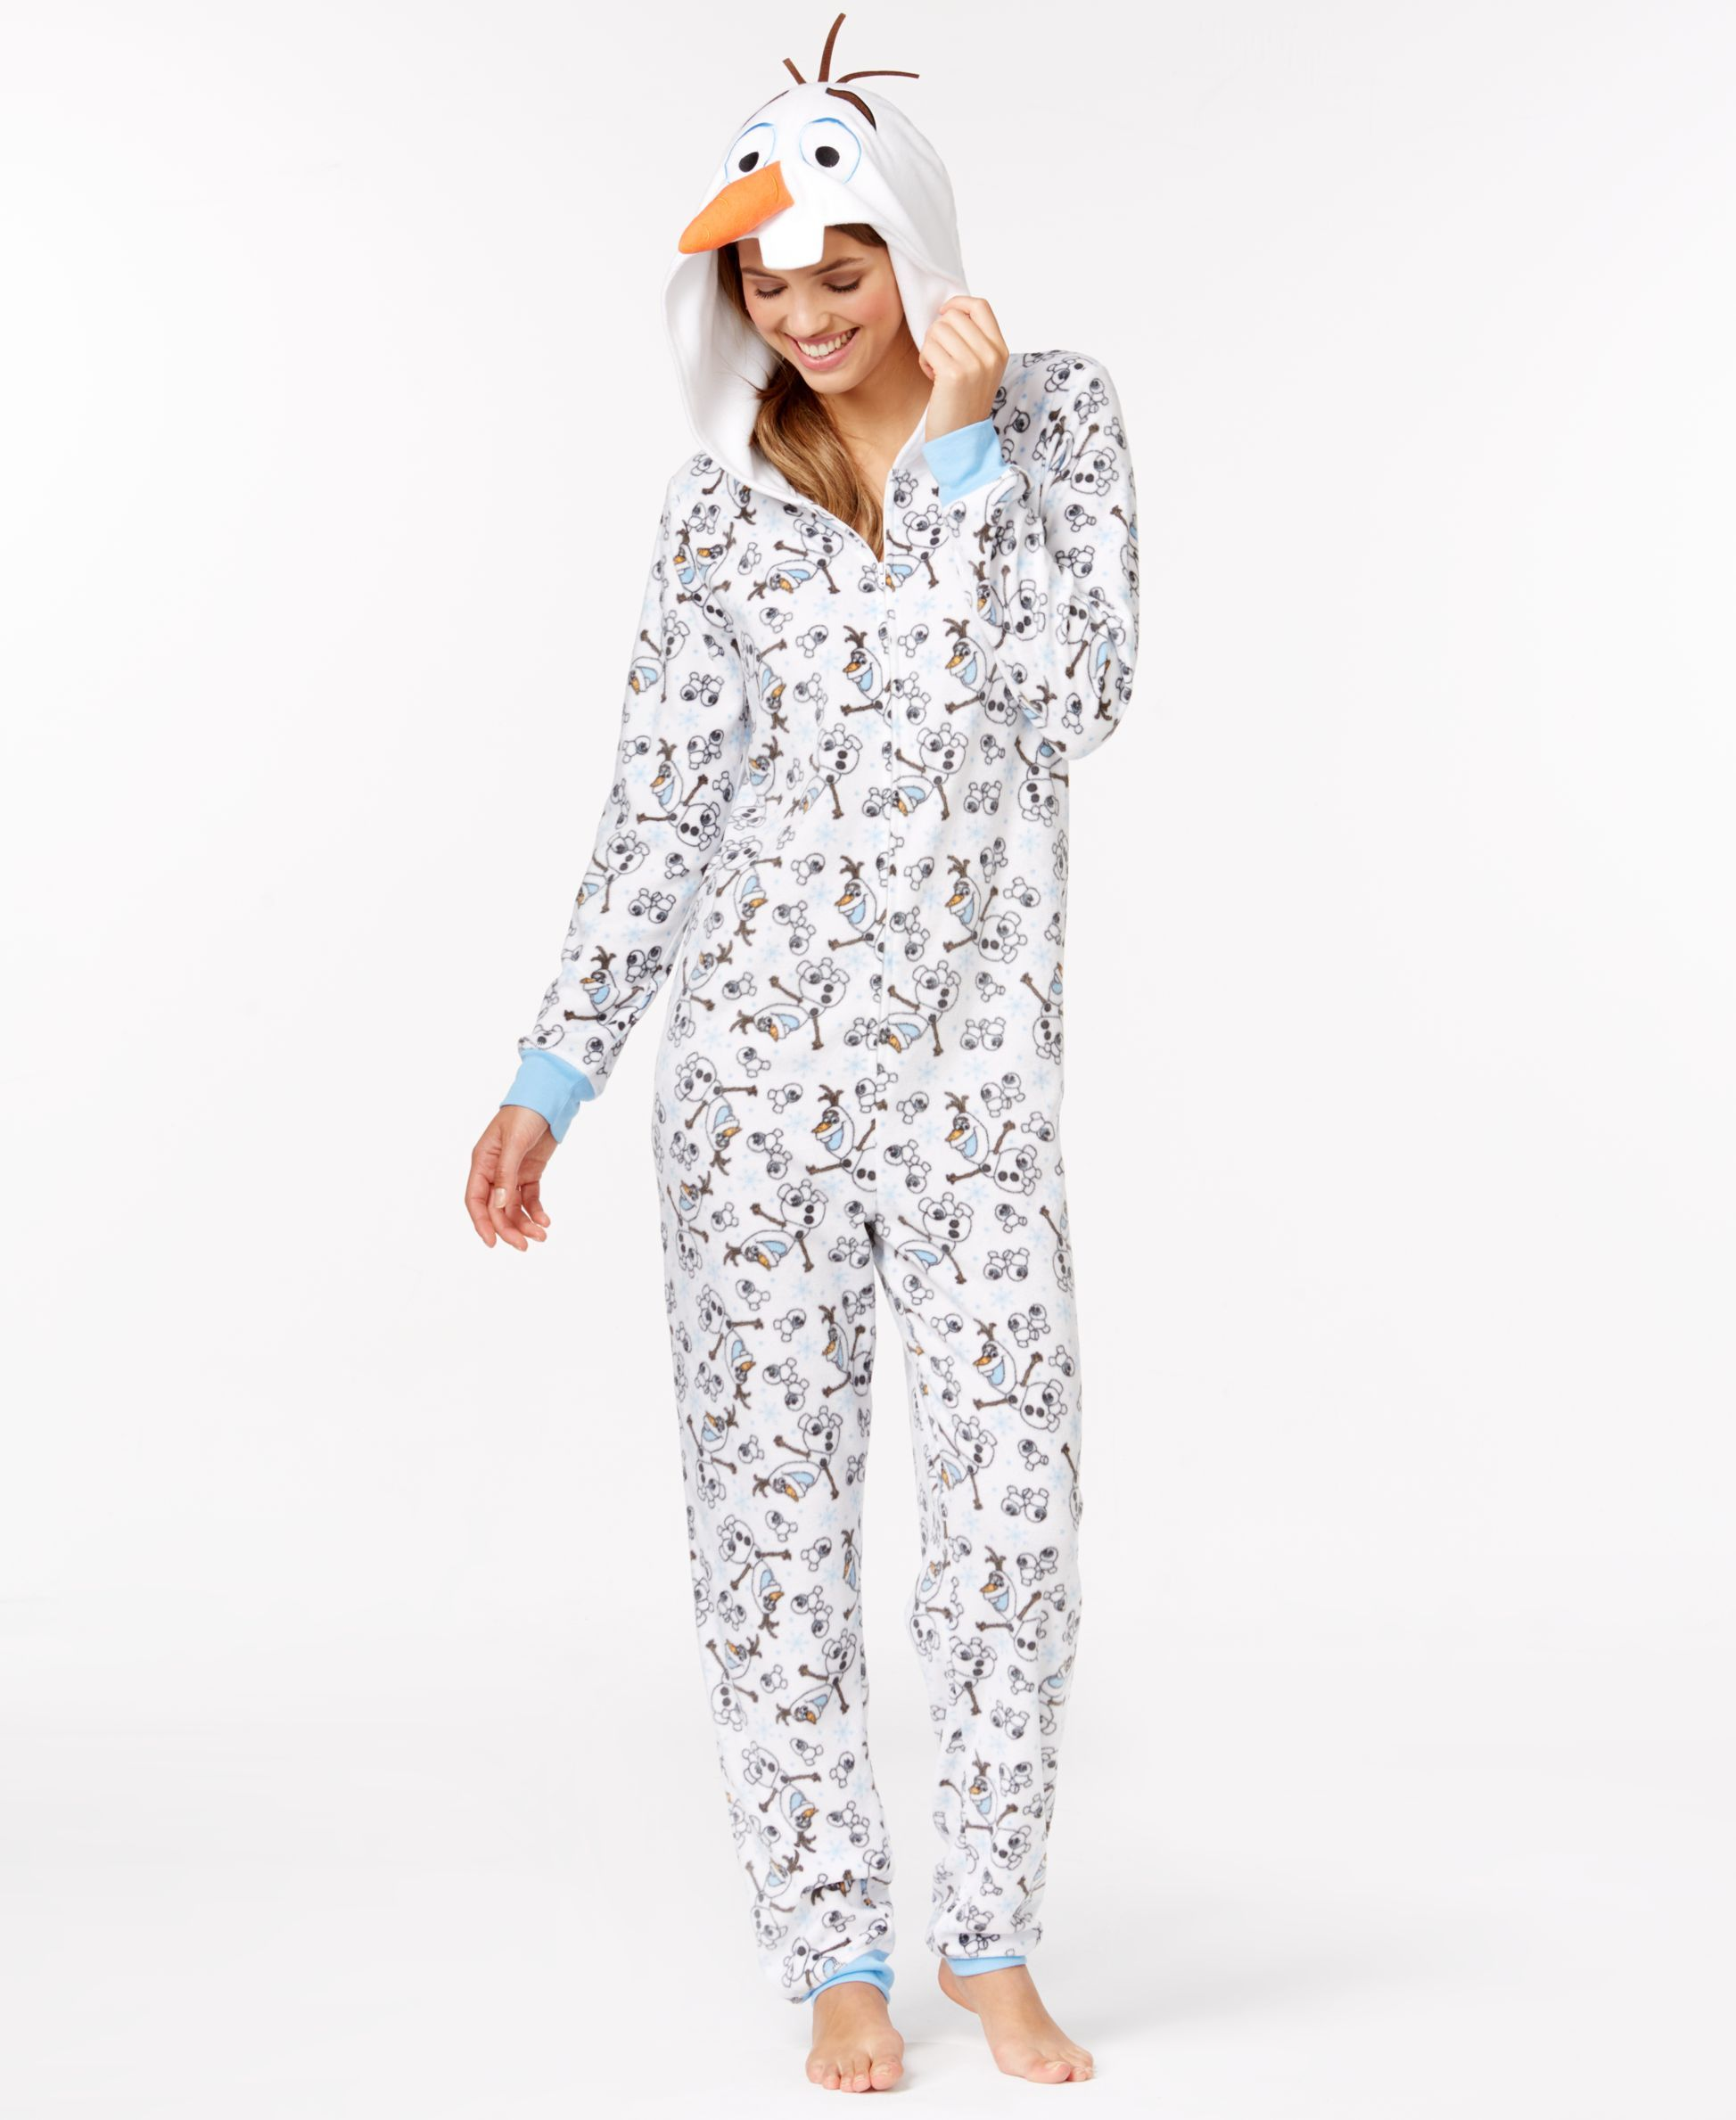 42b6b536cd Olaf Adult Hooded Onesie. Olaf Adult Hooded Onesie Onesie Pajamas ...